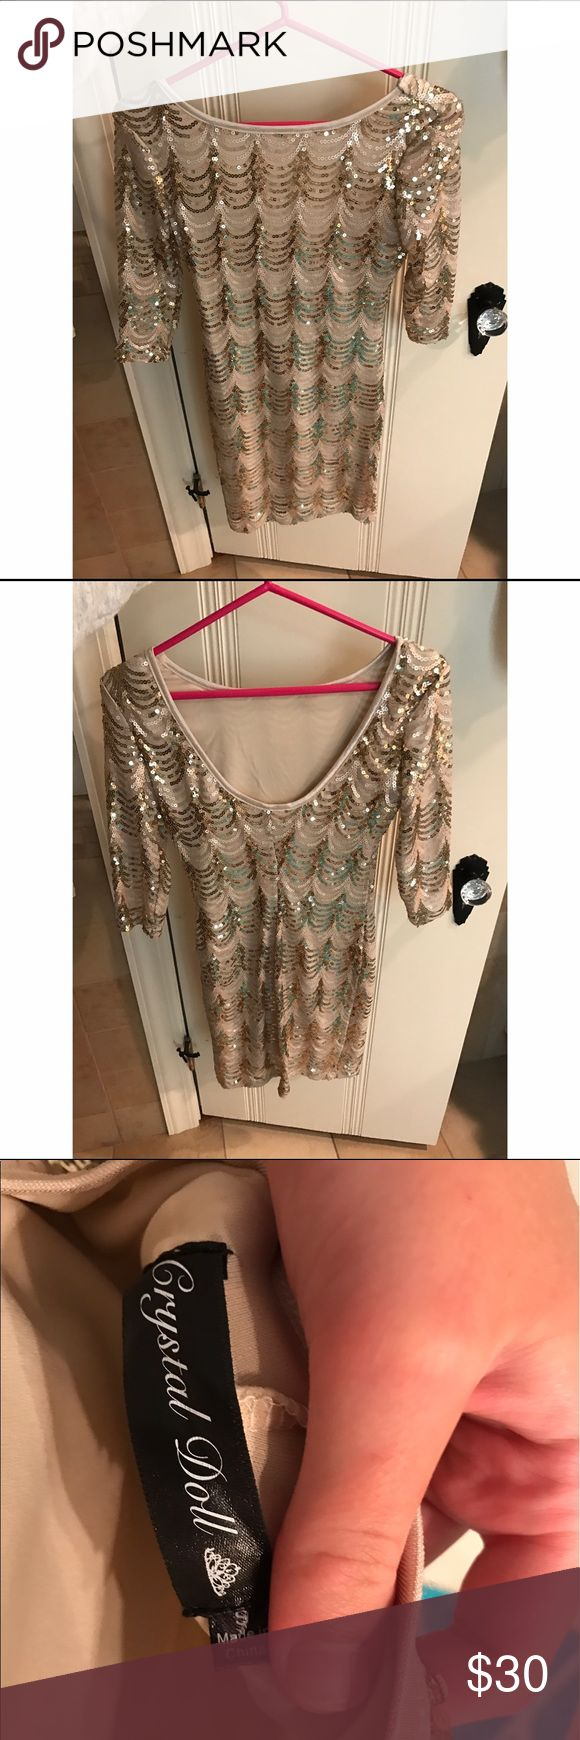 Gold sequined dress adorable gold sequined dress. size small. worn only once to homecoming. great for a dance, homecoming, or night out! runs true to size and is so flattering. from macy's. happy shopping🛍😘 Dresses Mini